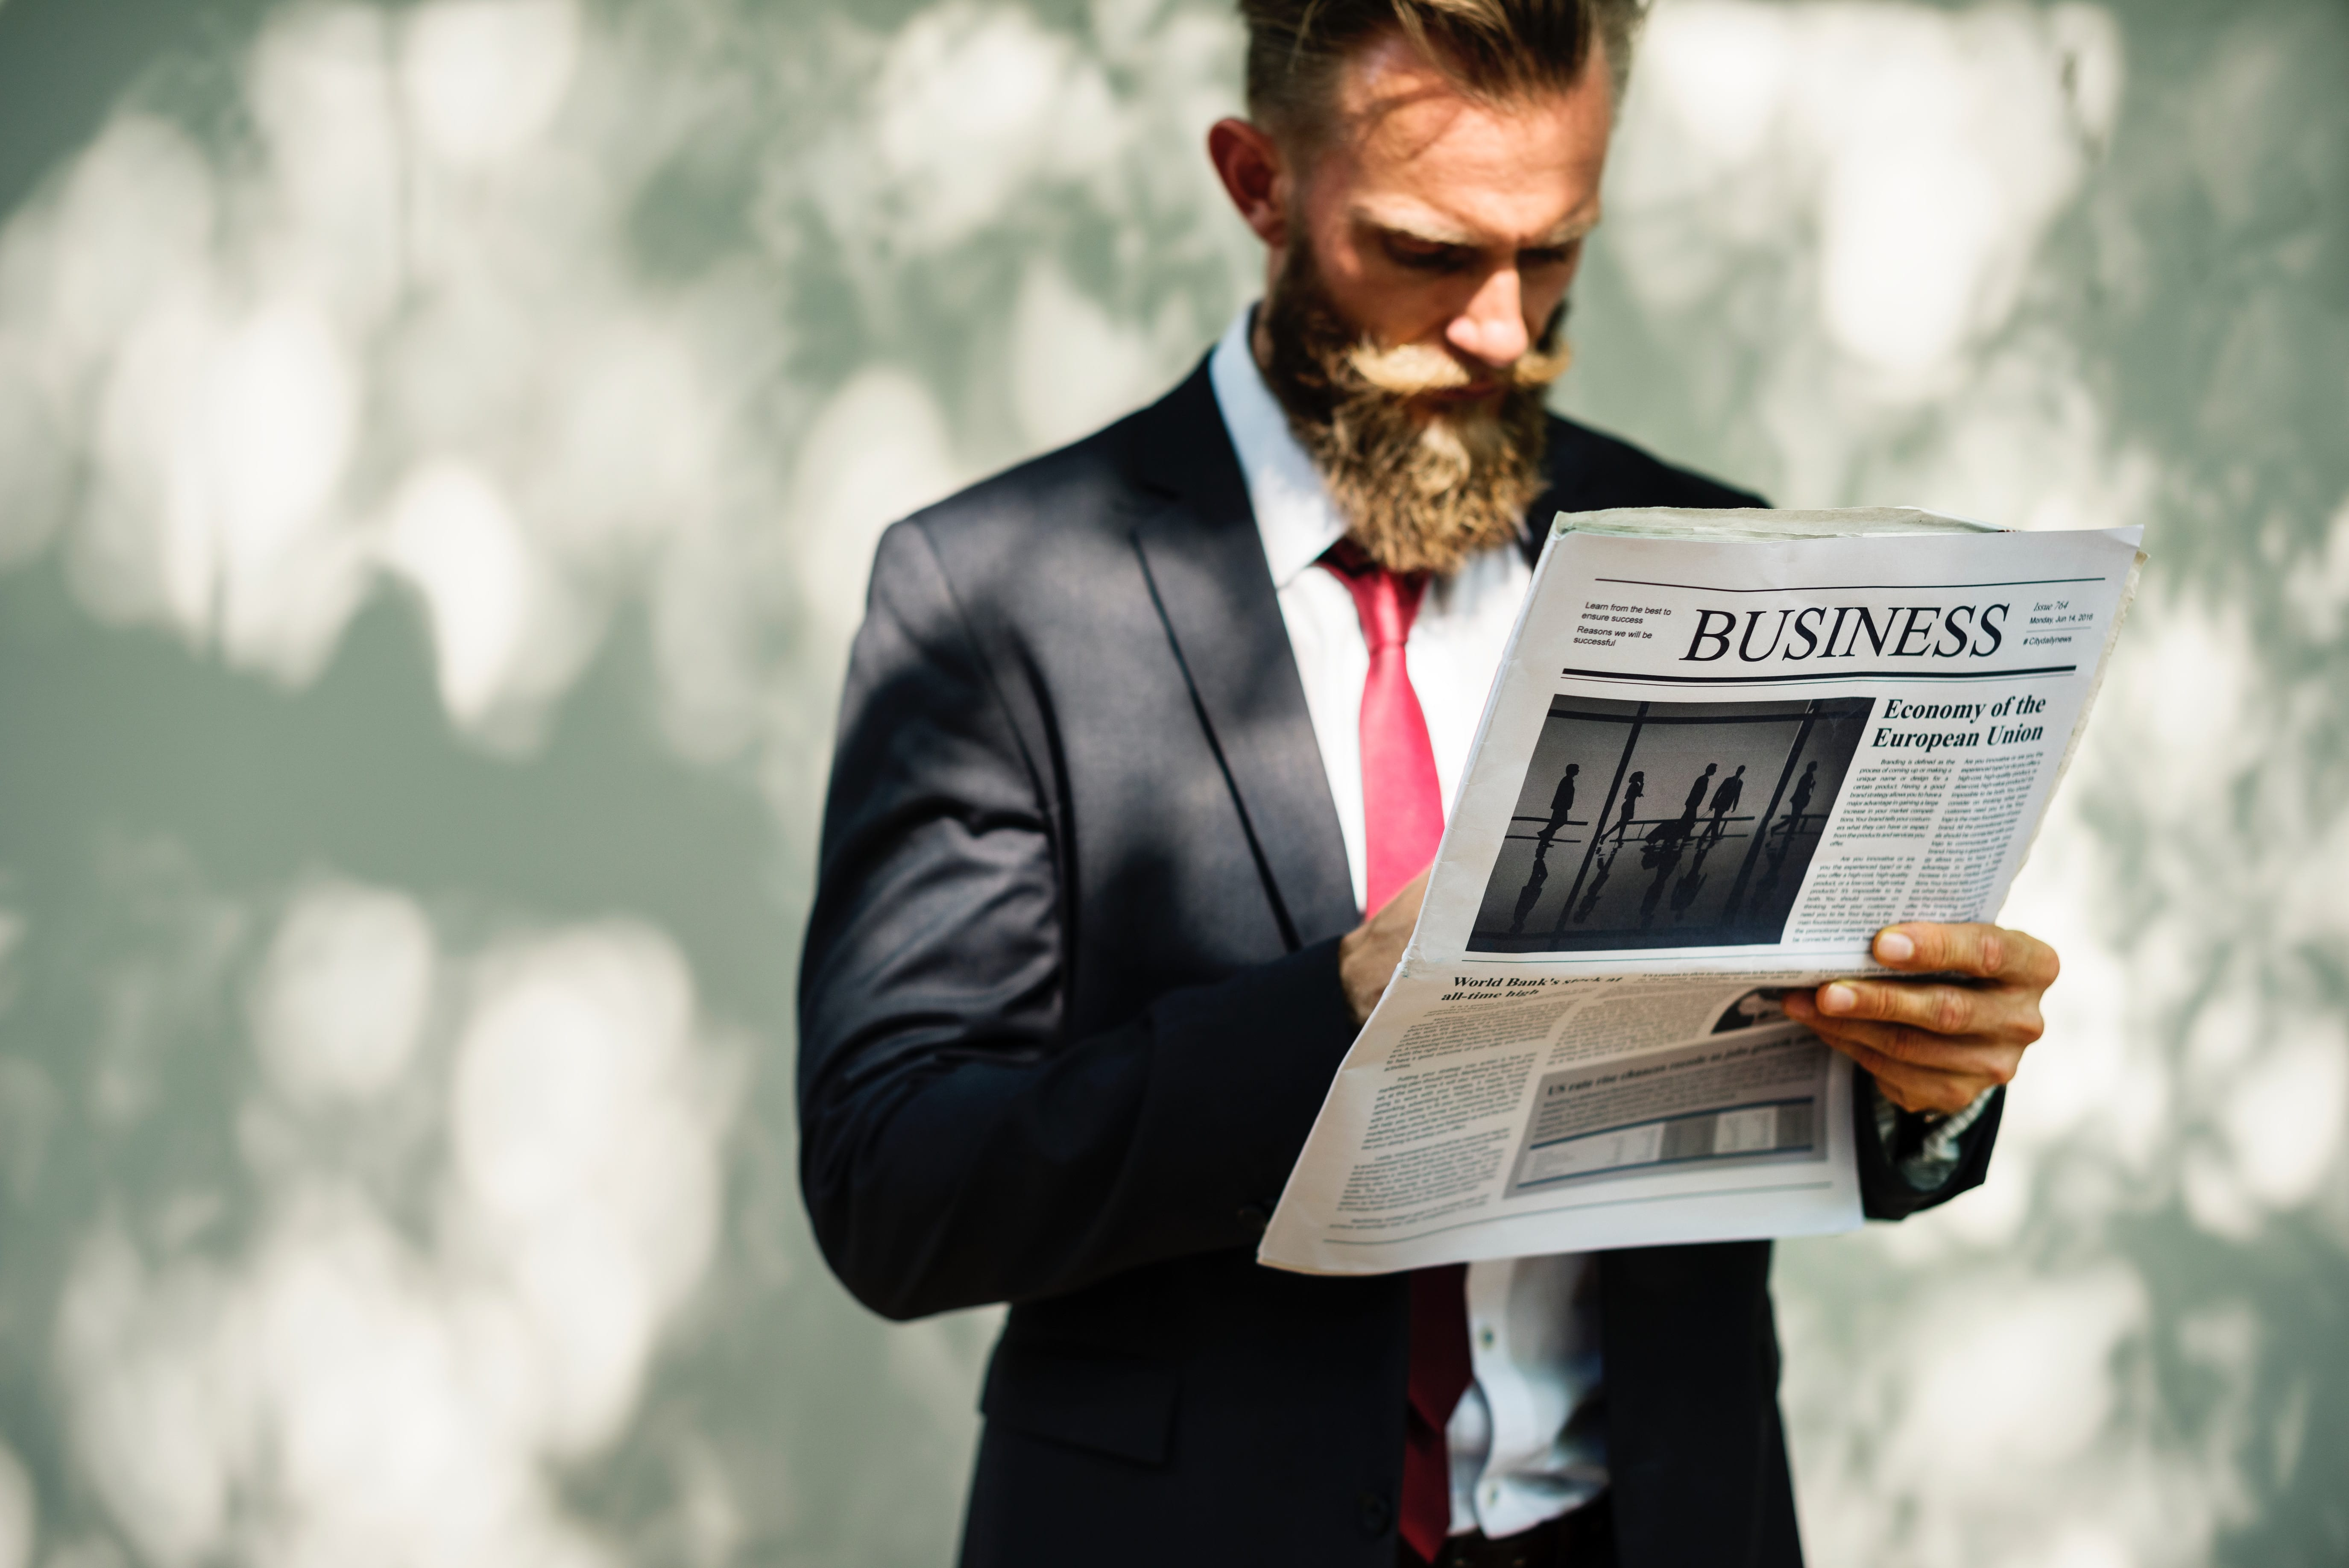 Man reading business section of newspaper; image by Rawpixel, via Unsplash.com.